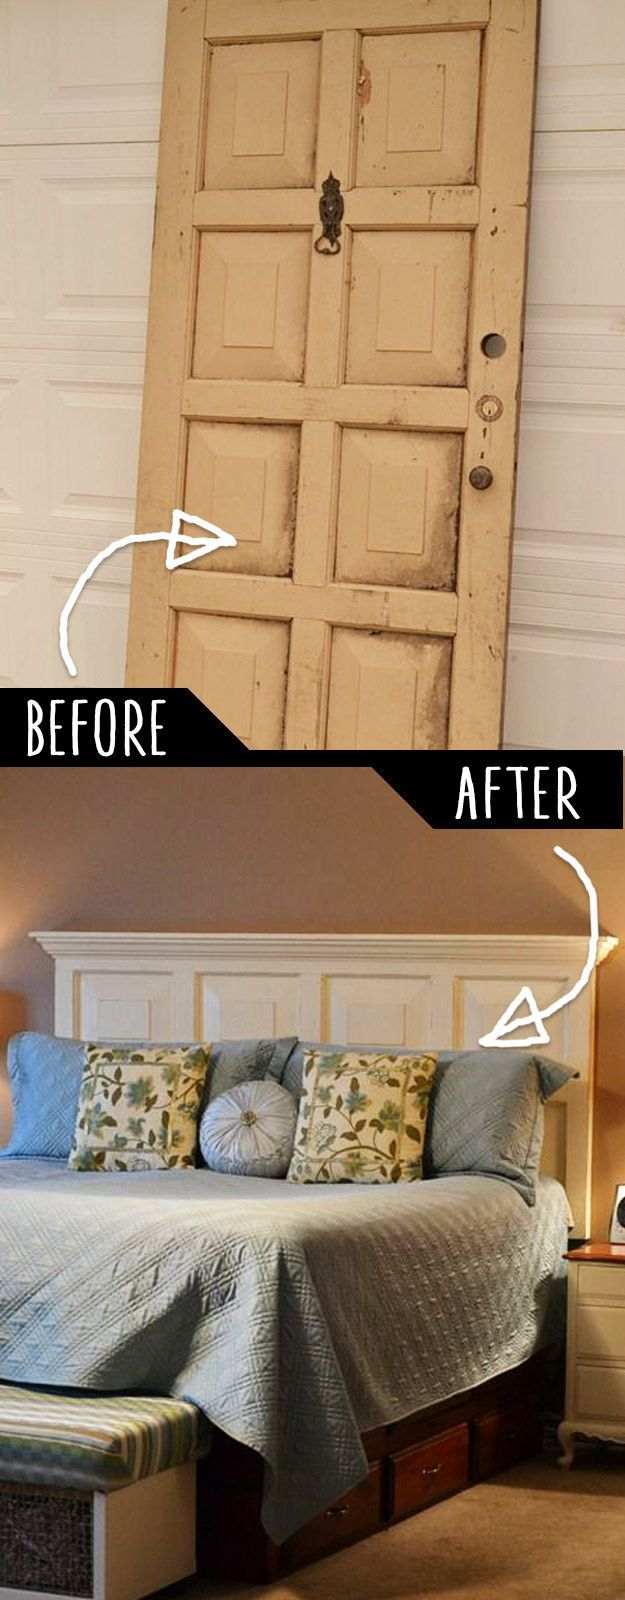 DIY Furnishings Hacks |   Door Headboard  | Cool Concepts for Artistic Do It Your self…